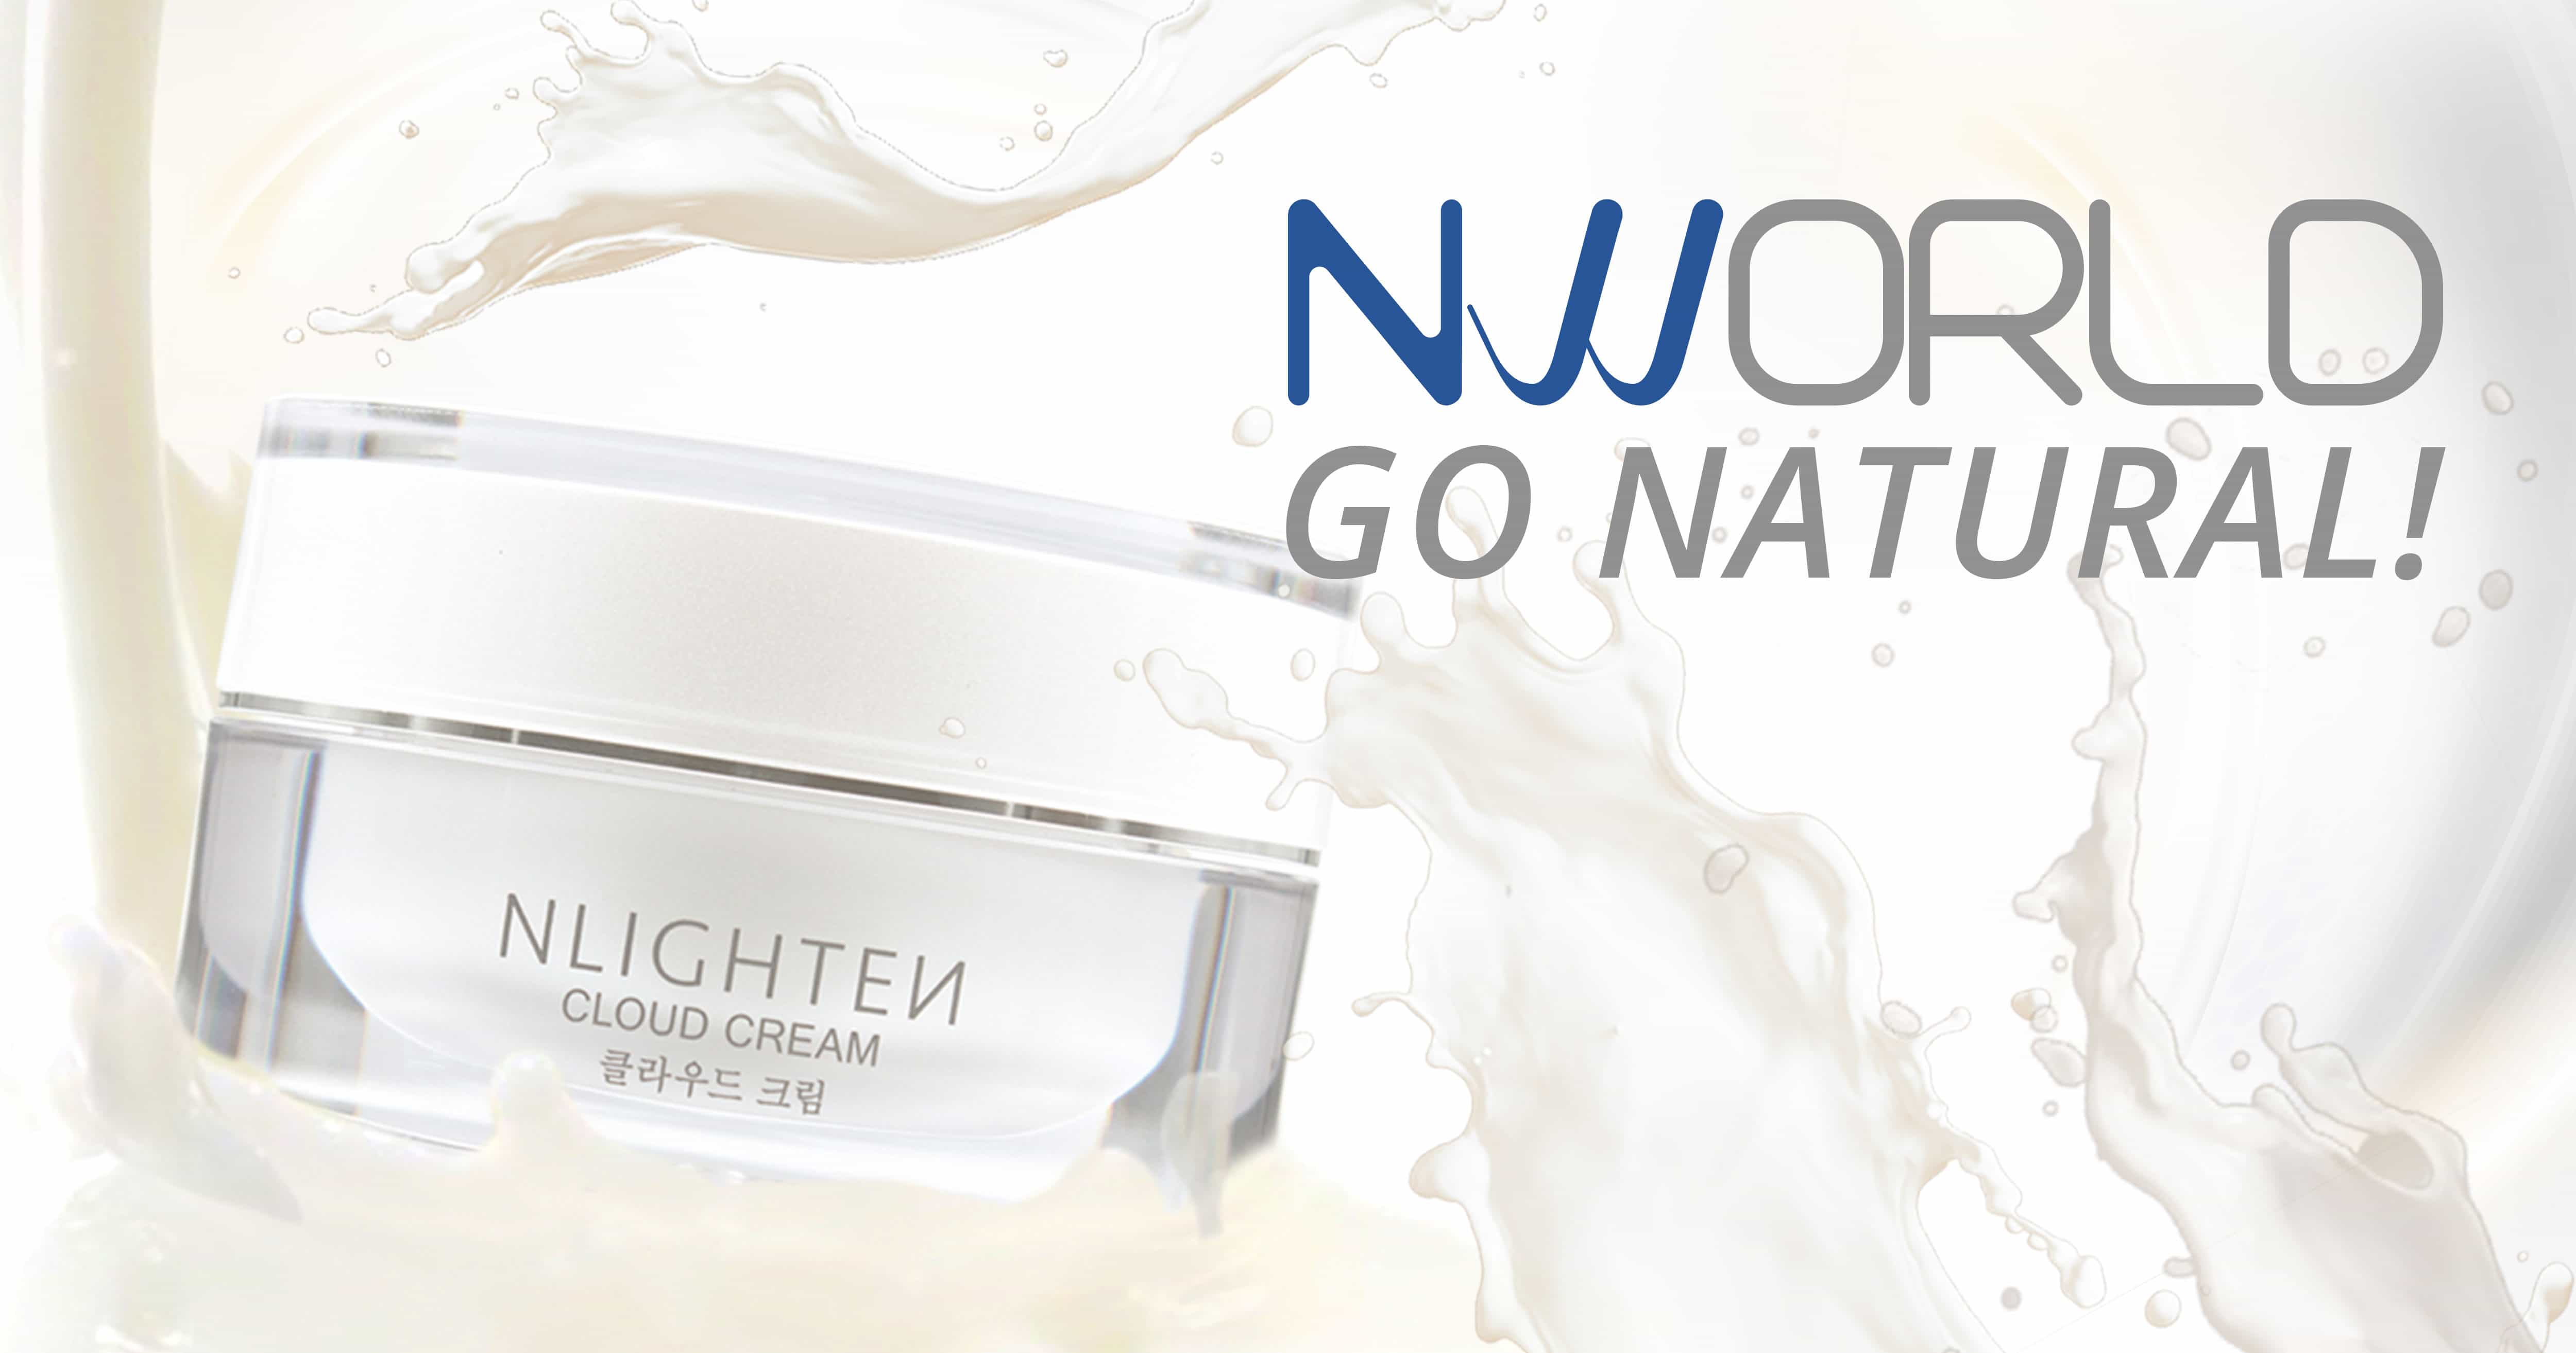 Go Natural! NLIGHTEN Cloud Cream